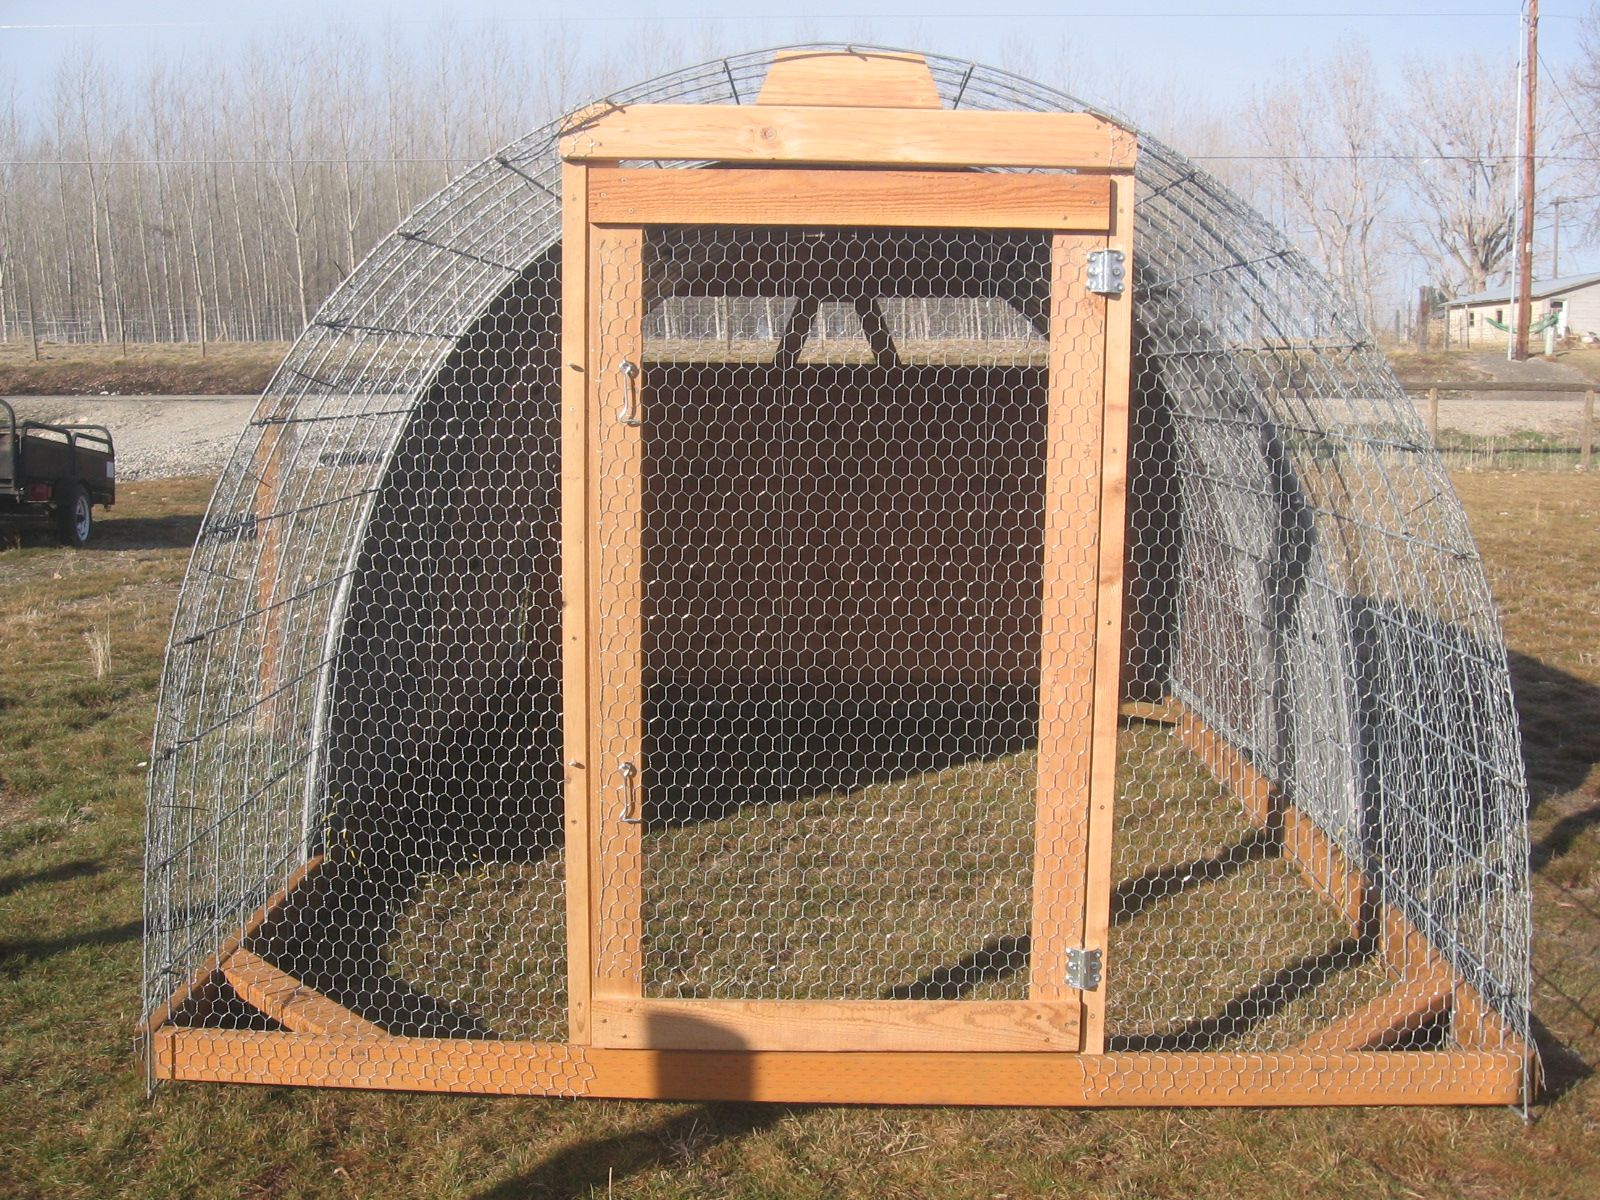 17 best ideas about chicken coops on pinterest chicken houses mini farm and raising chickens